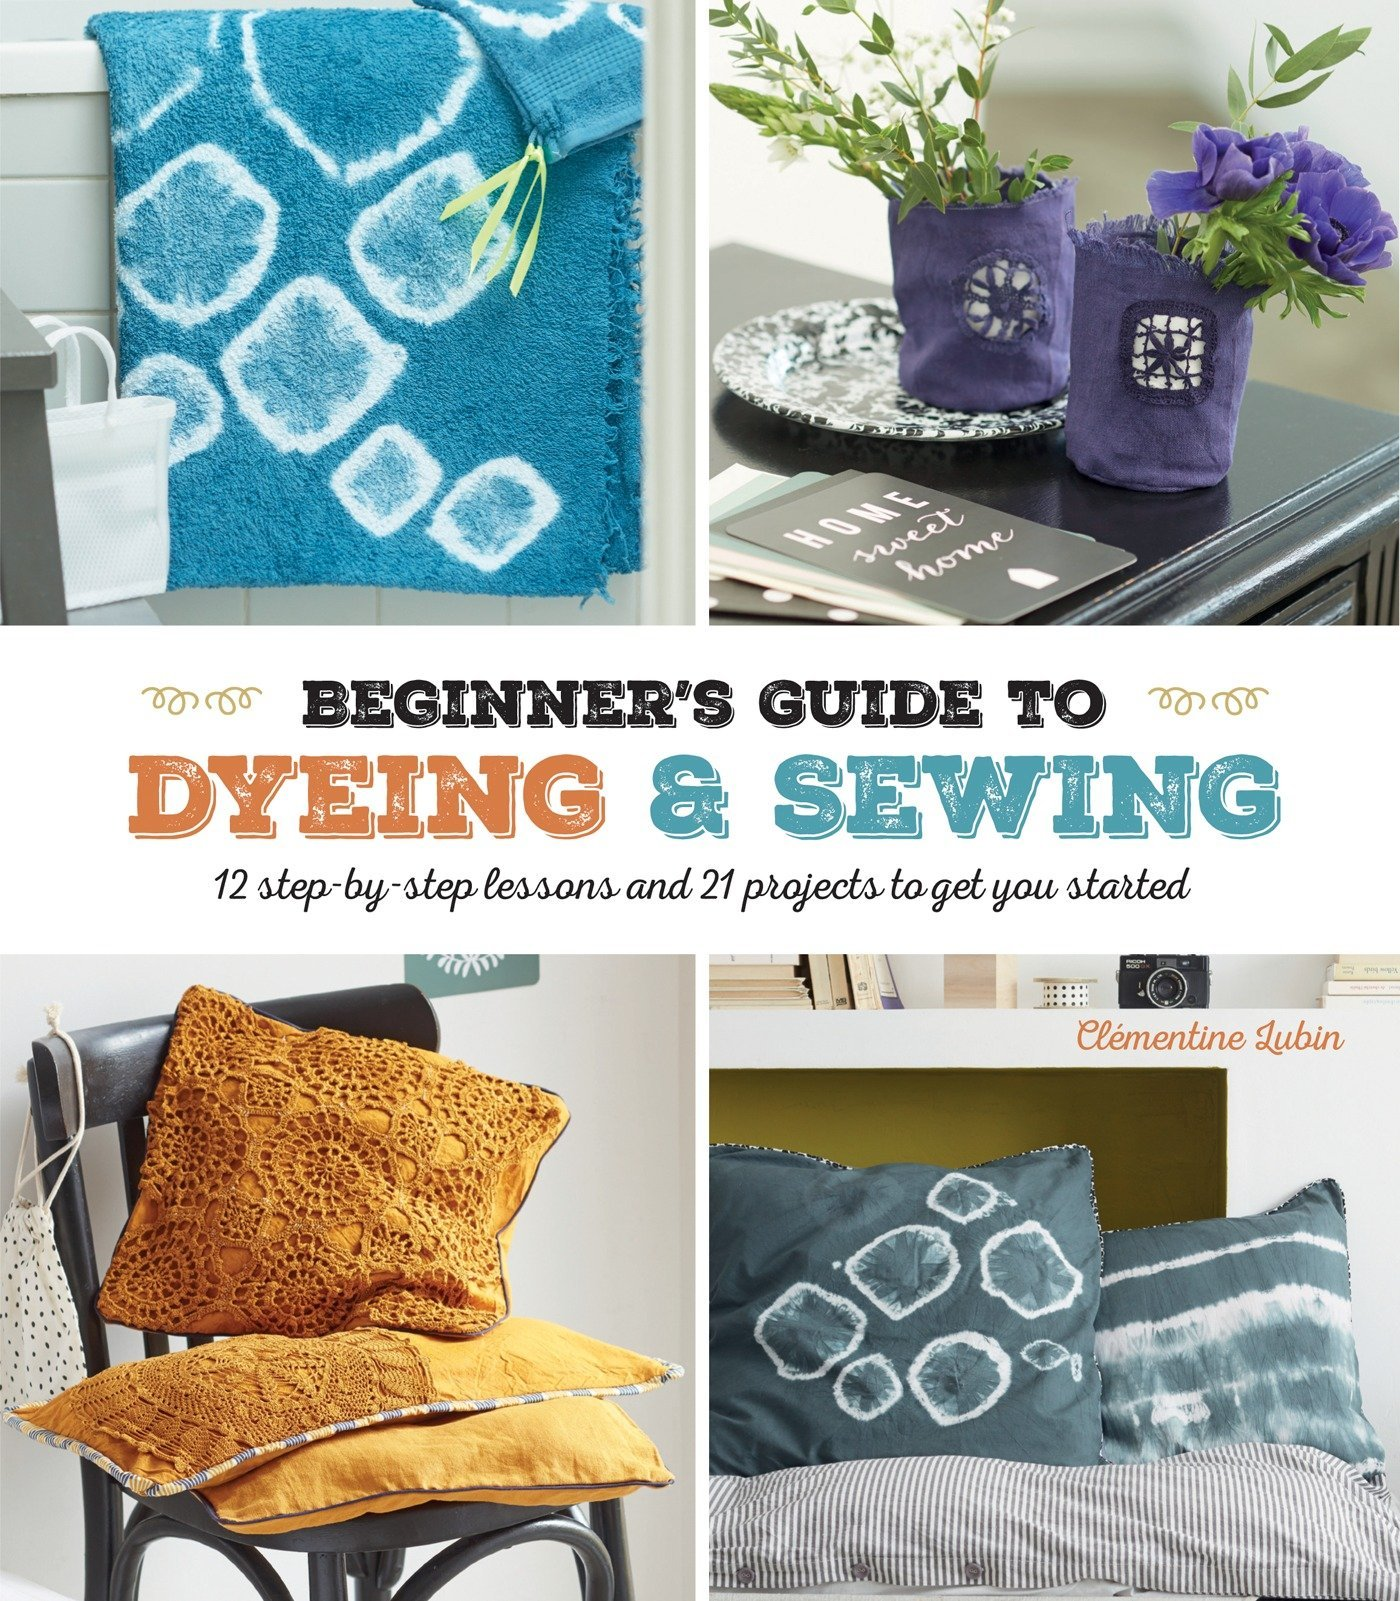 A Beginner's Guide to Dyeing: 12 Step-By-Step Lessons and 21 Projects To Get You Started